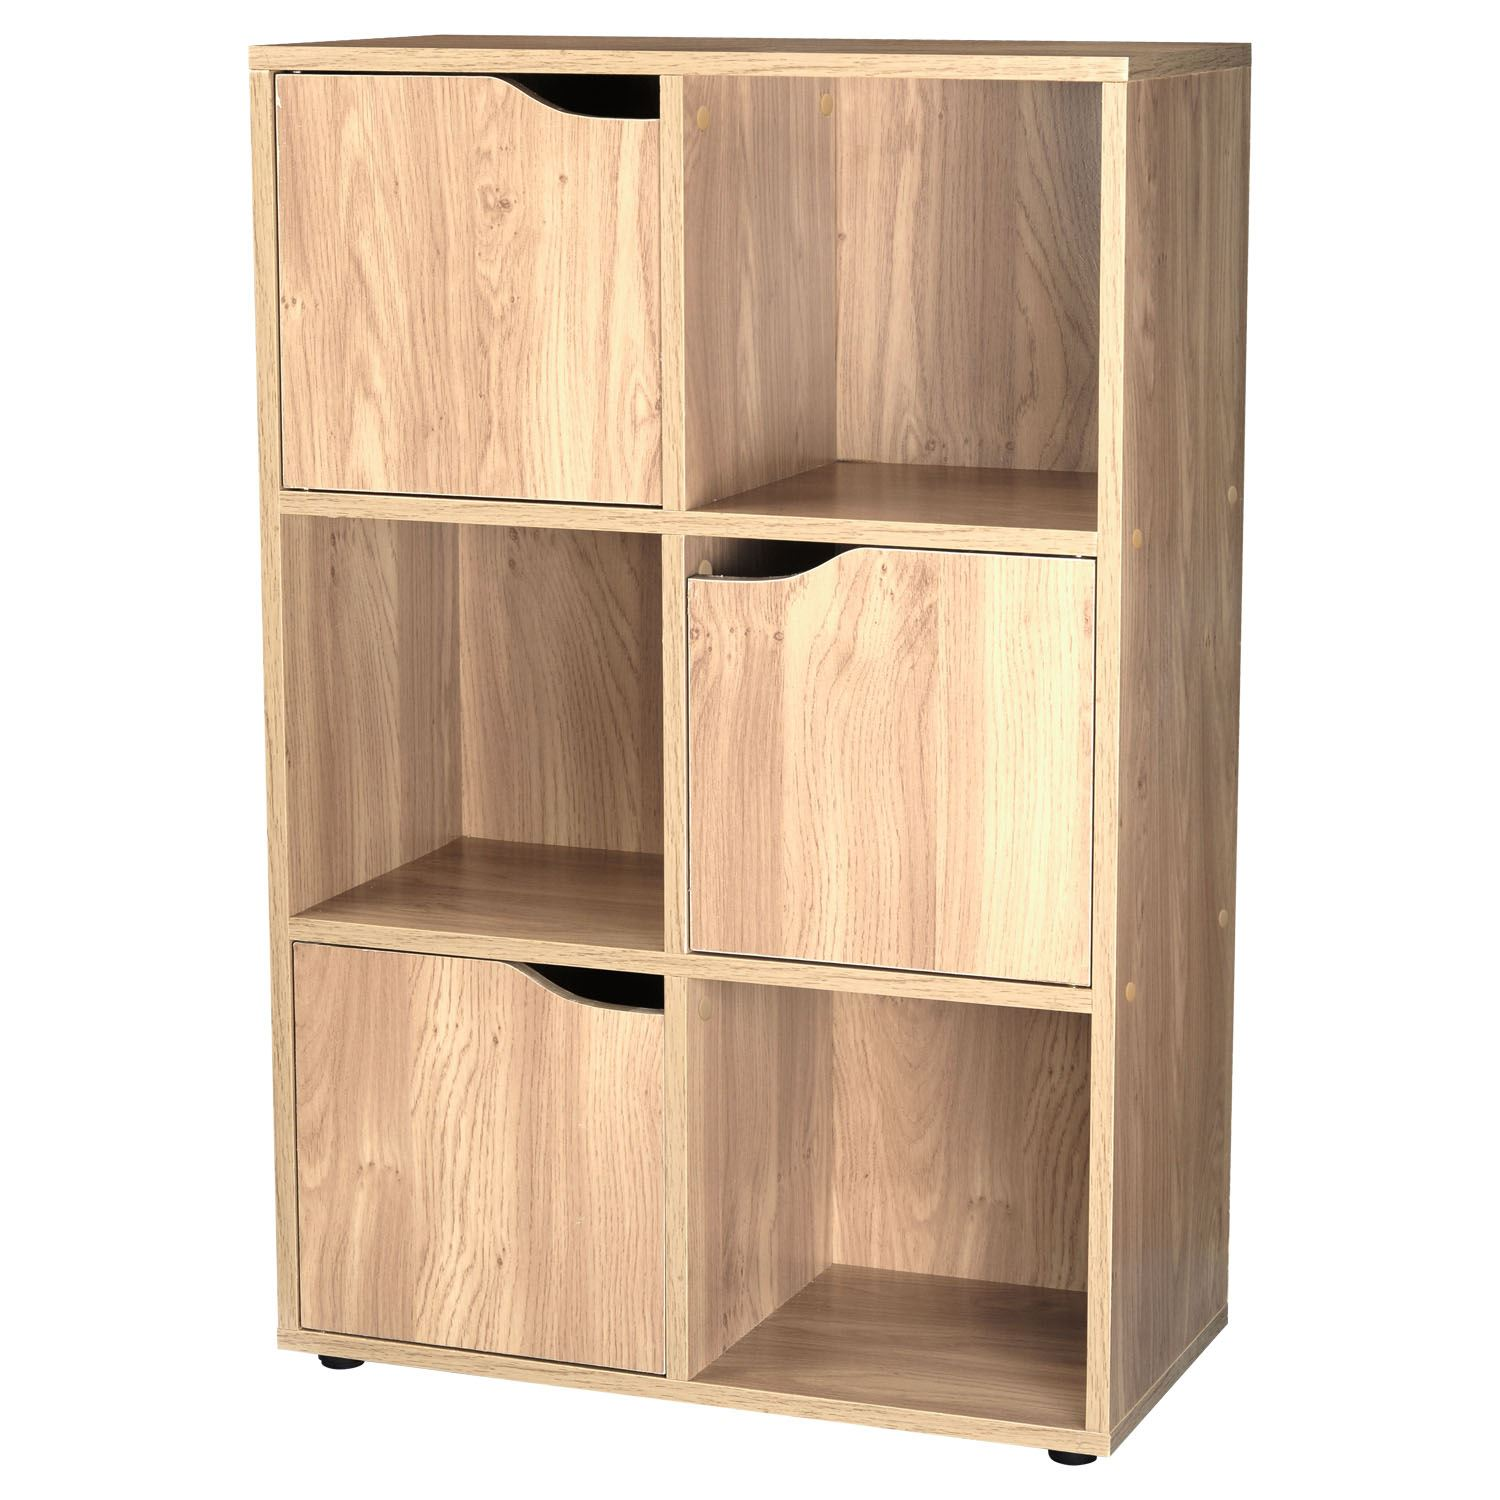 Details about 3/5 Door Oak 6/9 Cube Wooden Bookcase Storage Display